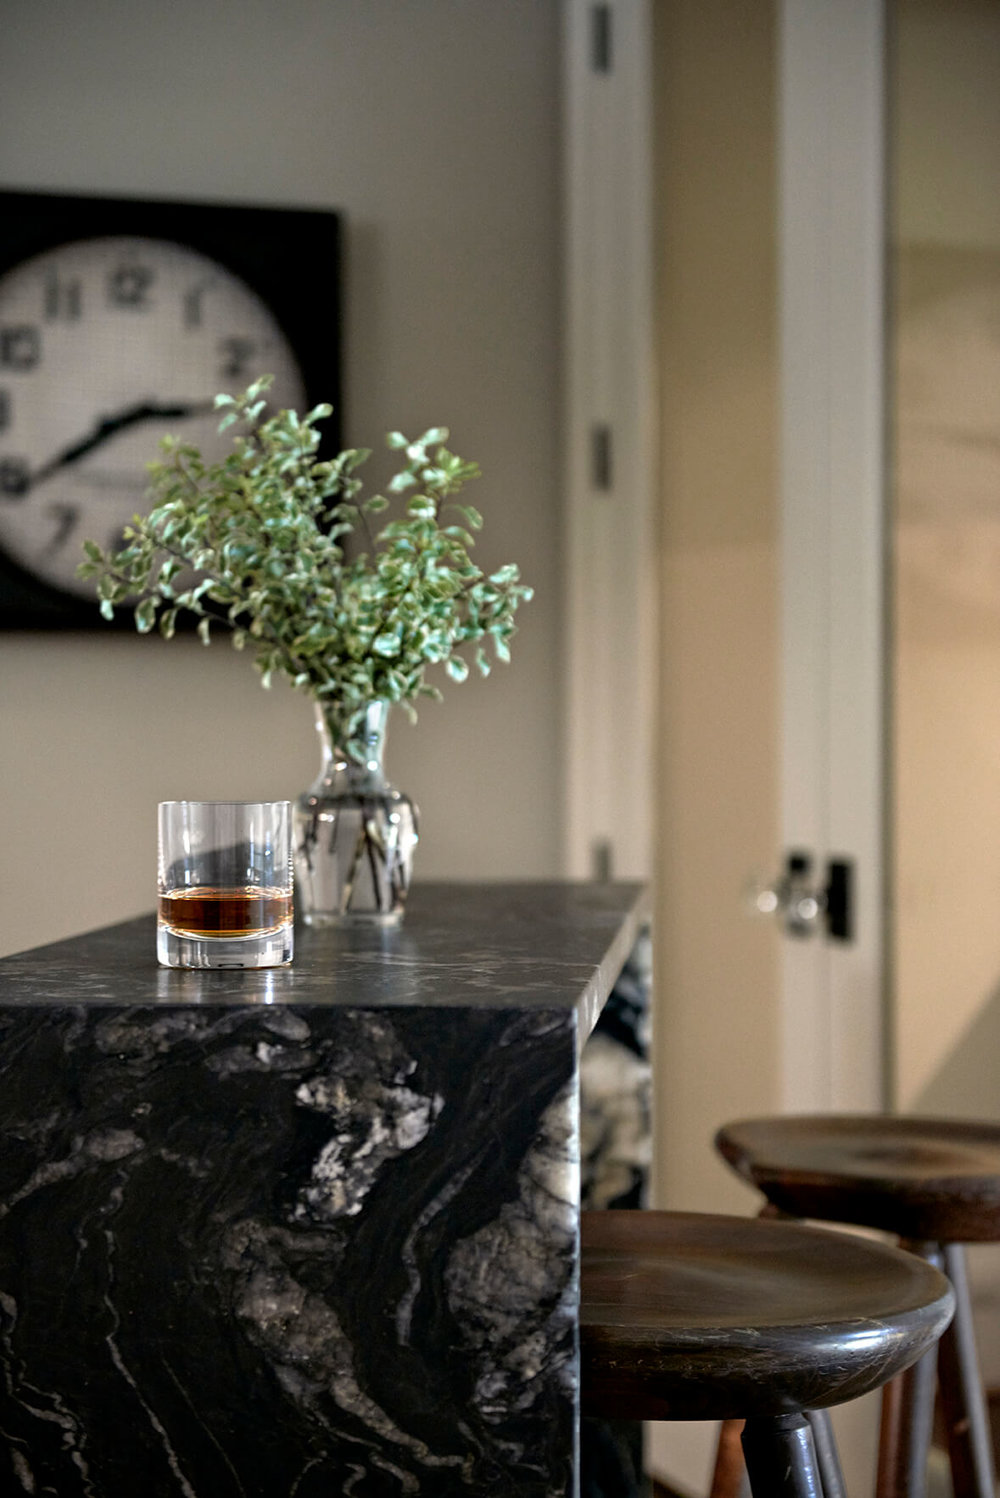 ... Contemporary Bureau Interior Design. Black And Gray Marble Bar With A  Small Plant And Rock Glass On Top   Rustic